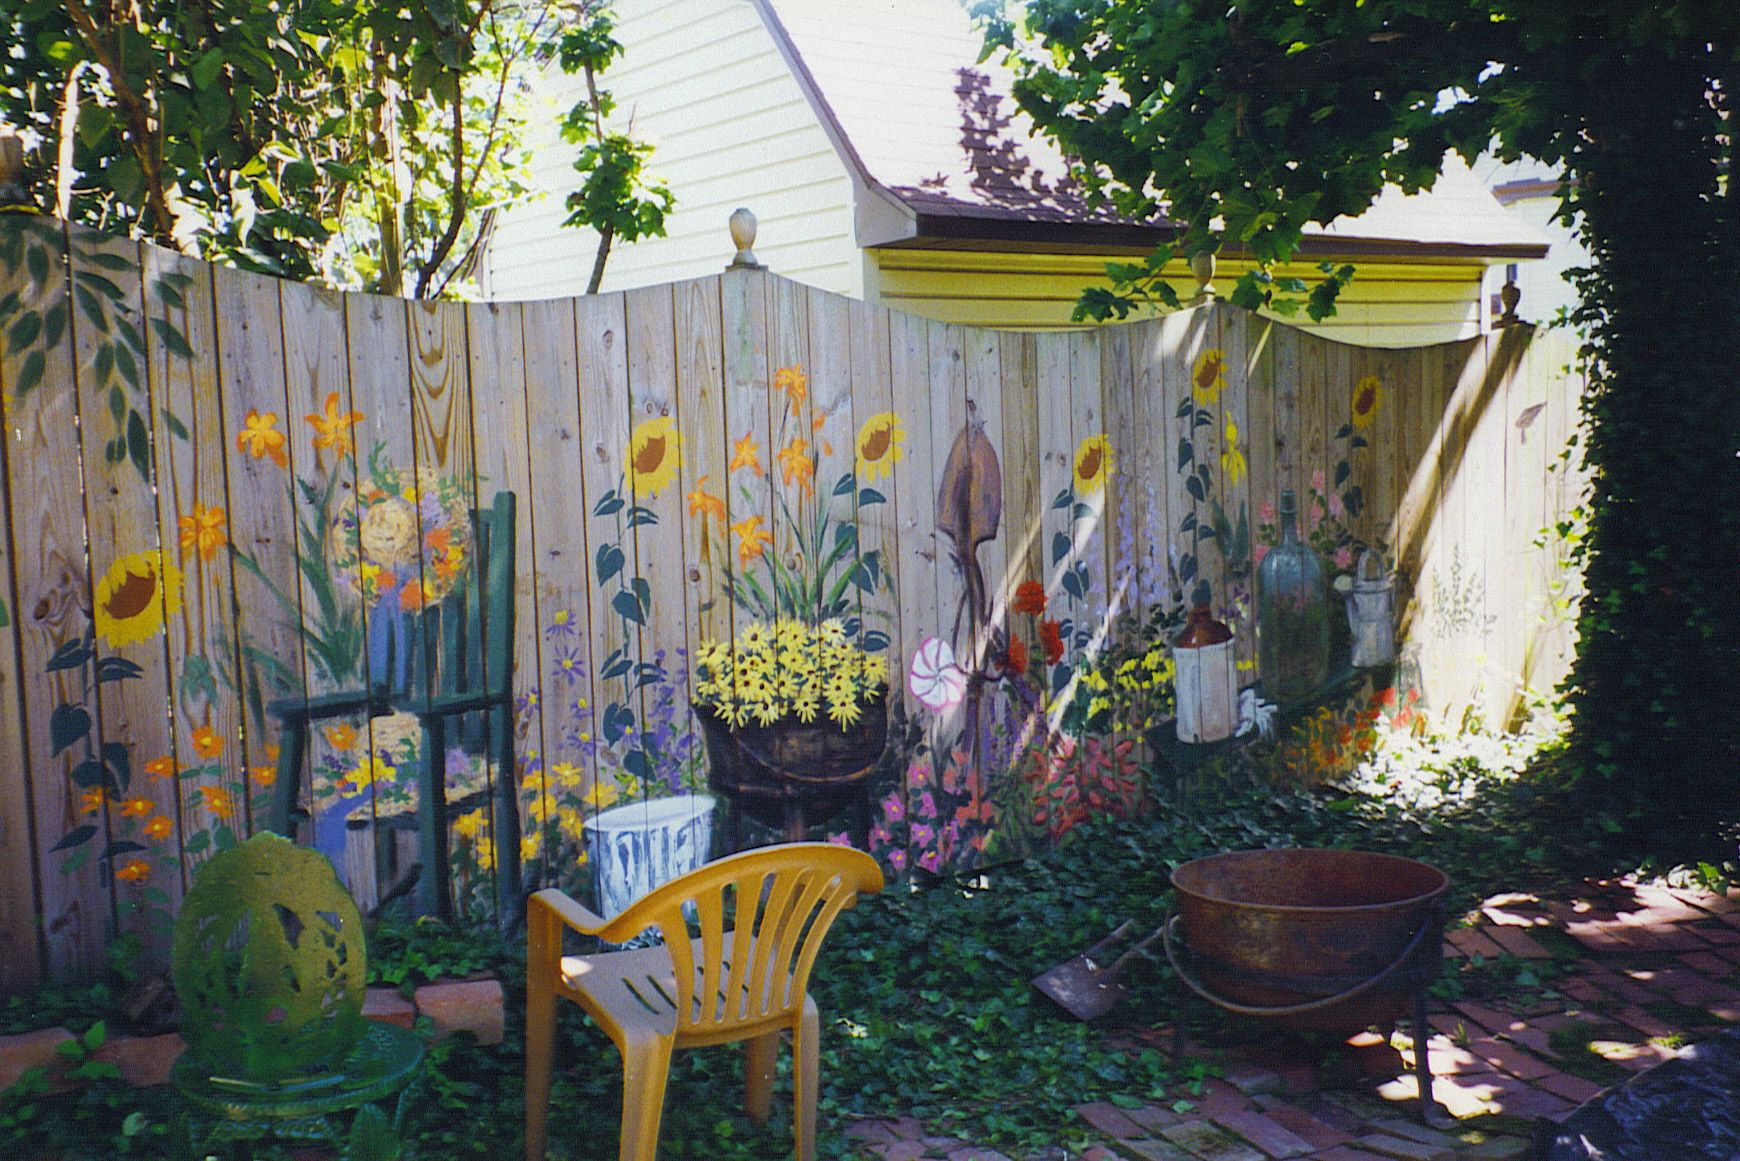 Backyard Painted Fences Dave Naydock 1320 West